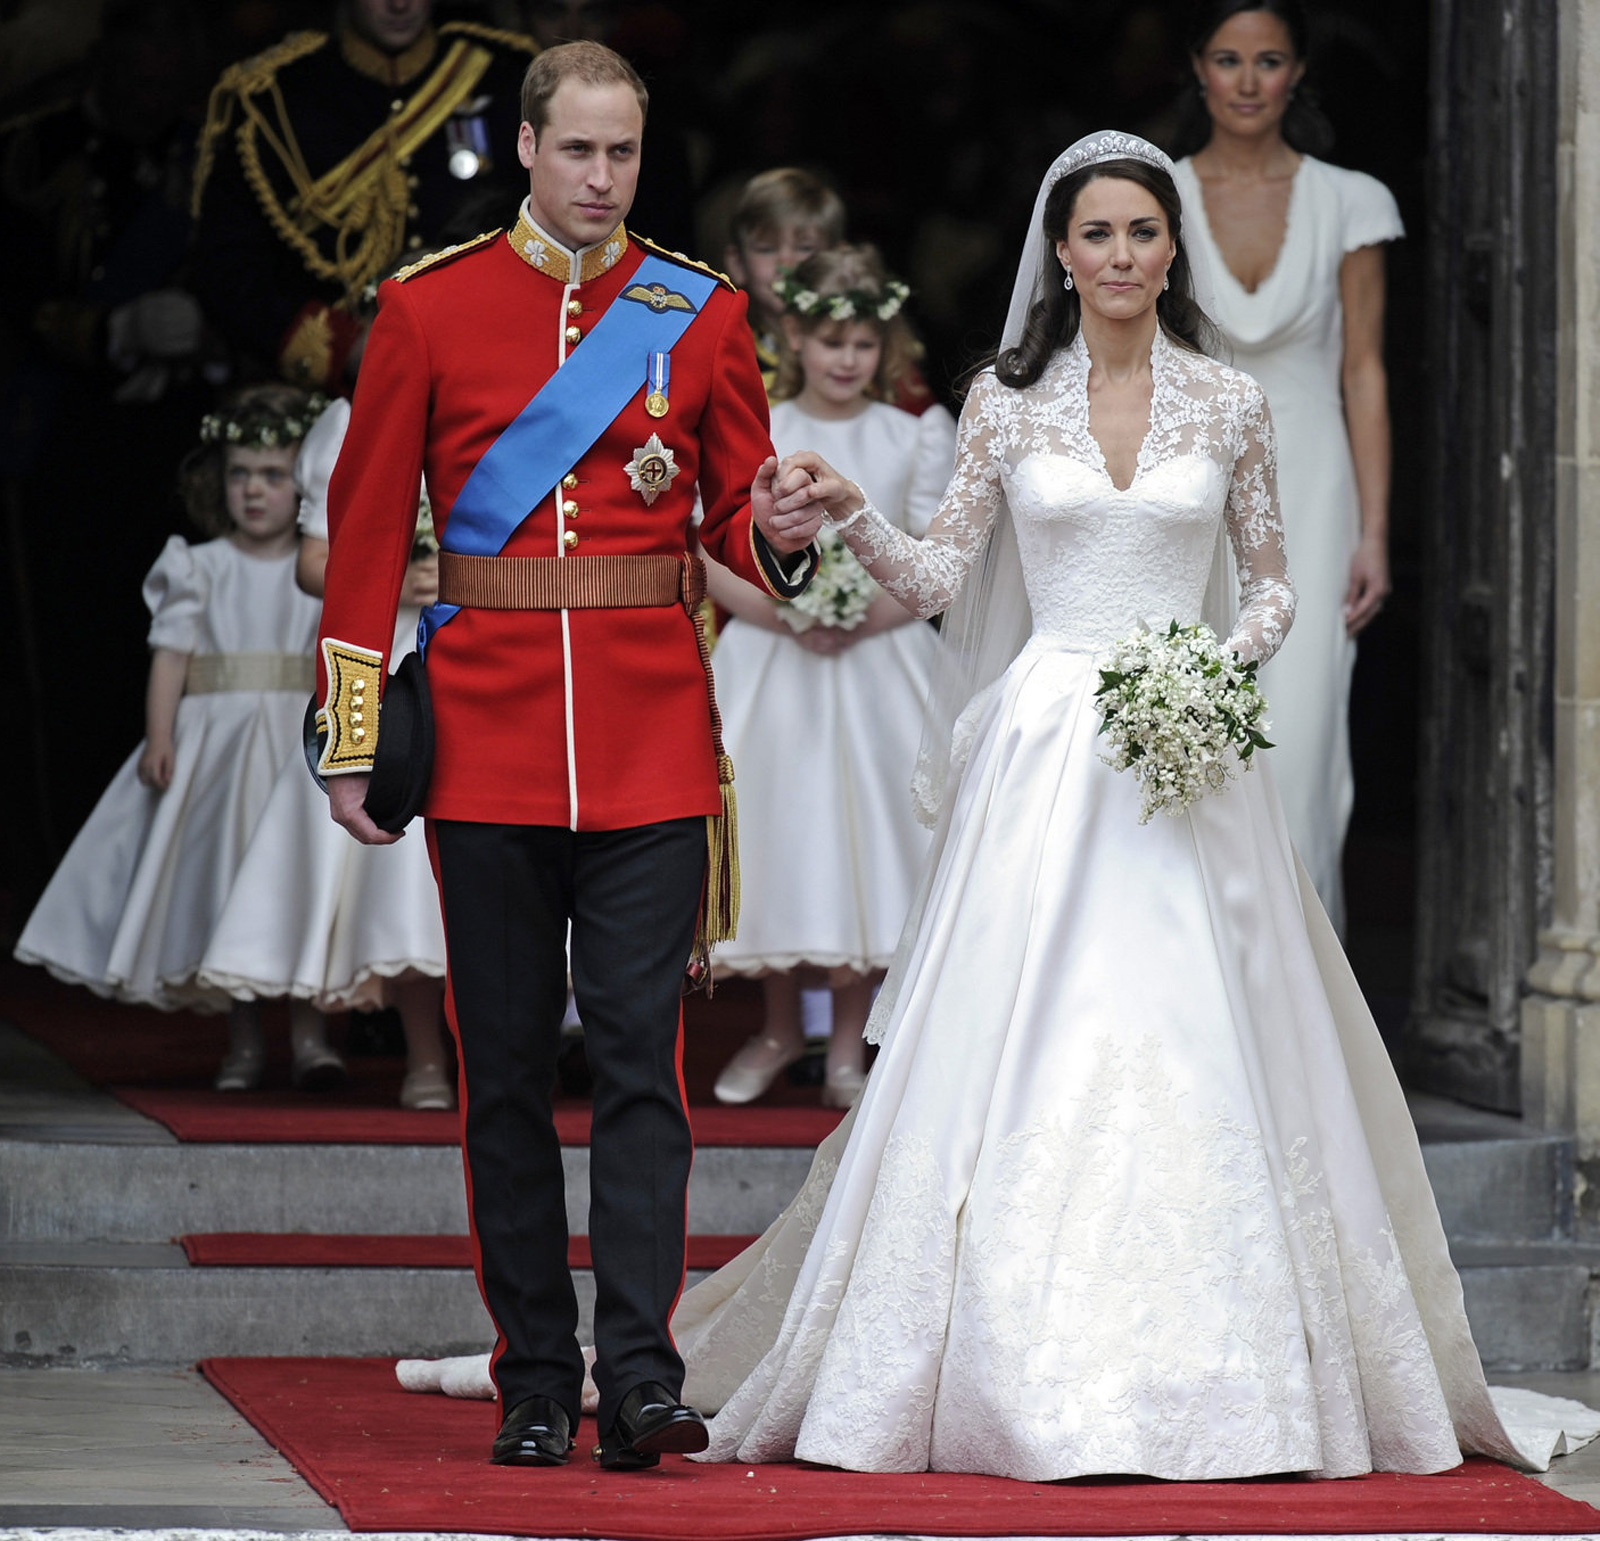 William And Kate Wedding Anniversary: I Was Here.: Kate Middleton